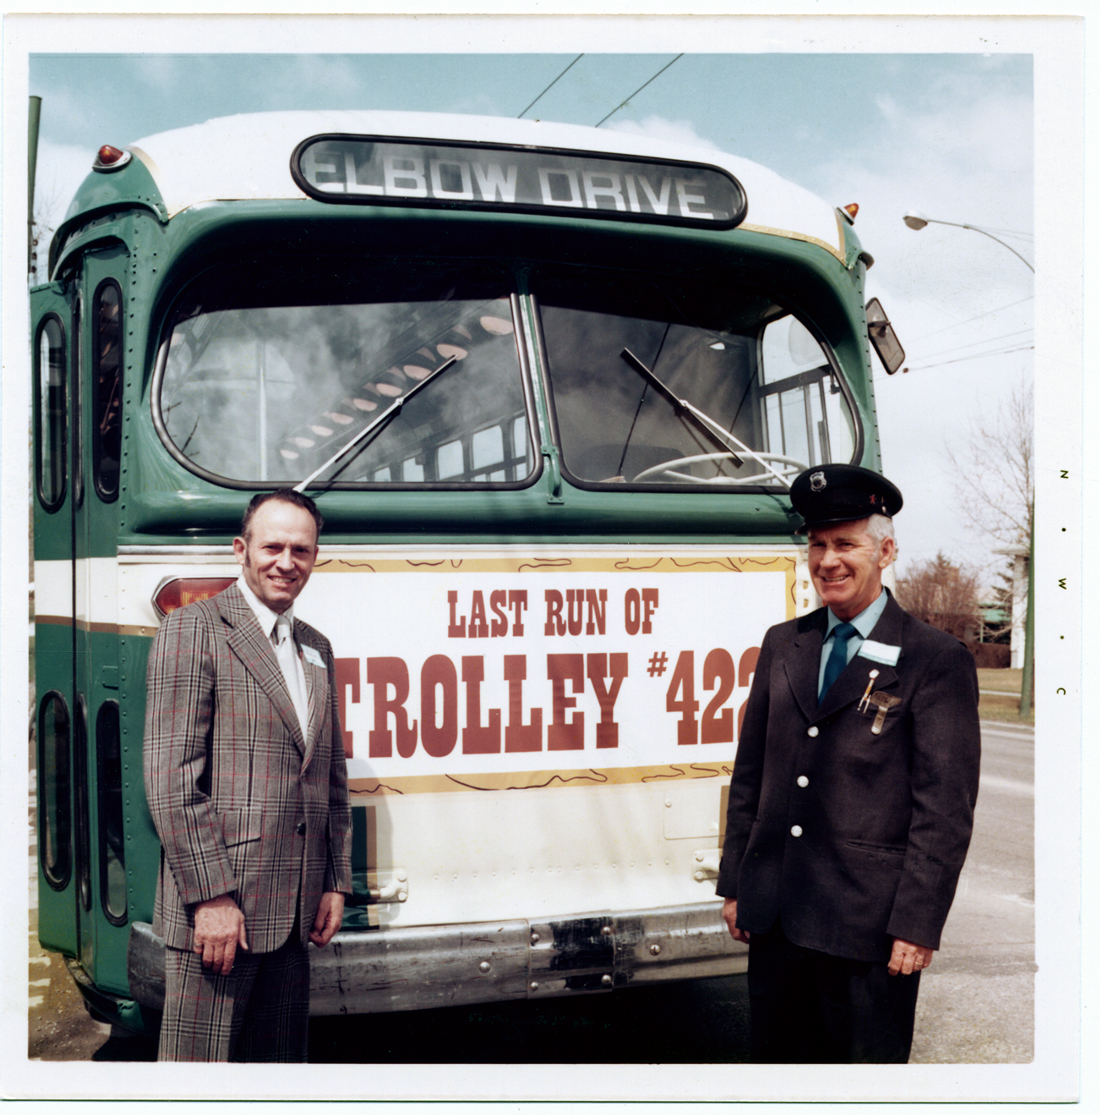 Calgary Trolley Coach